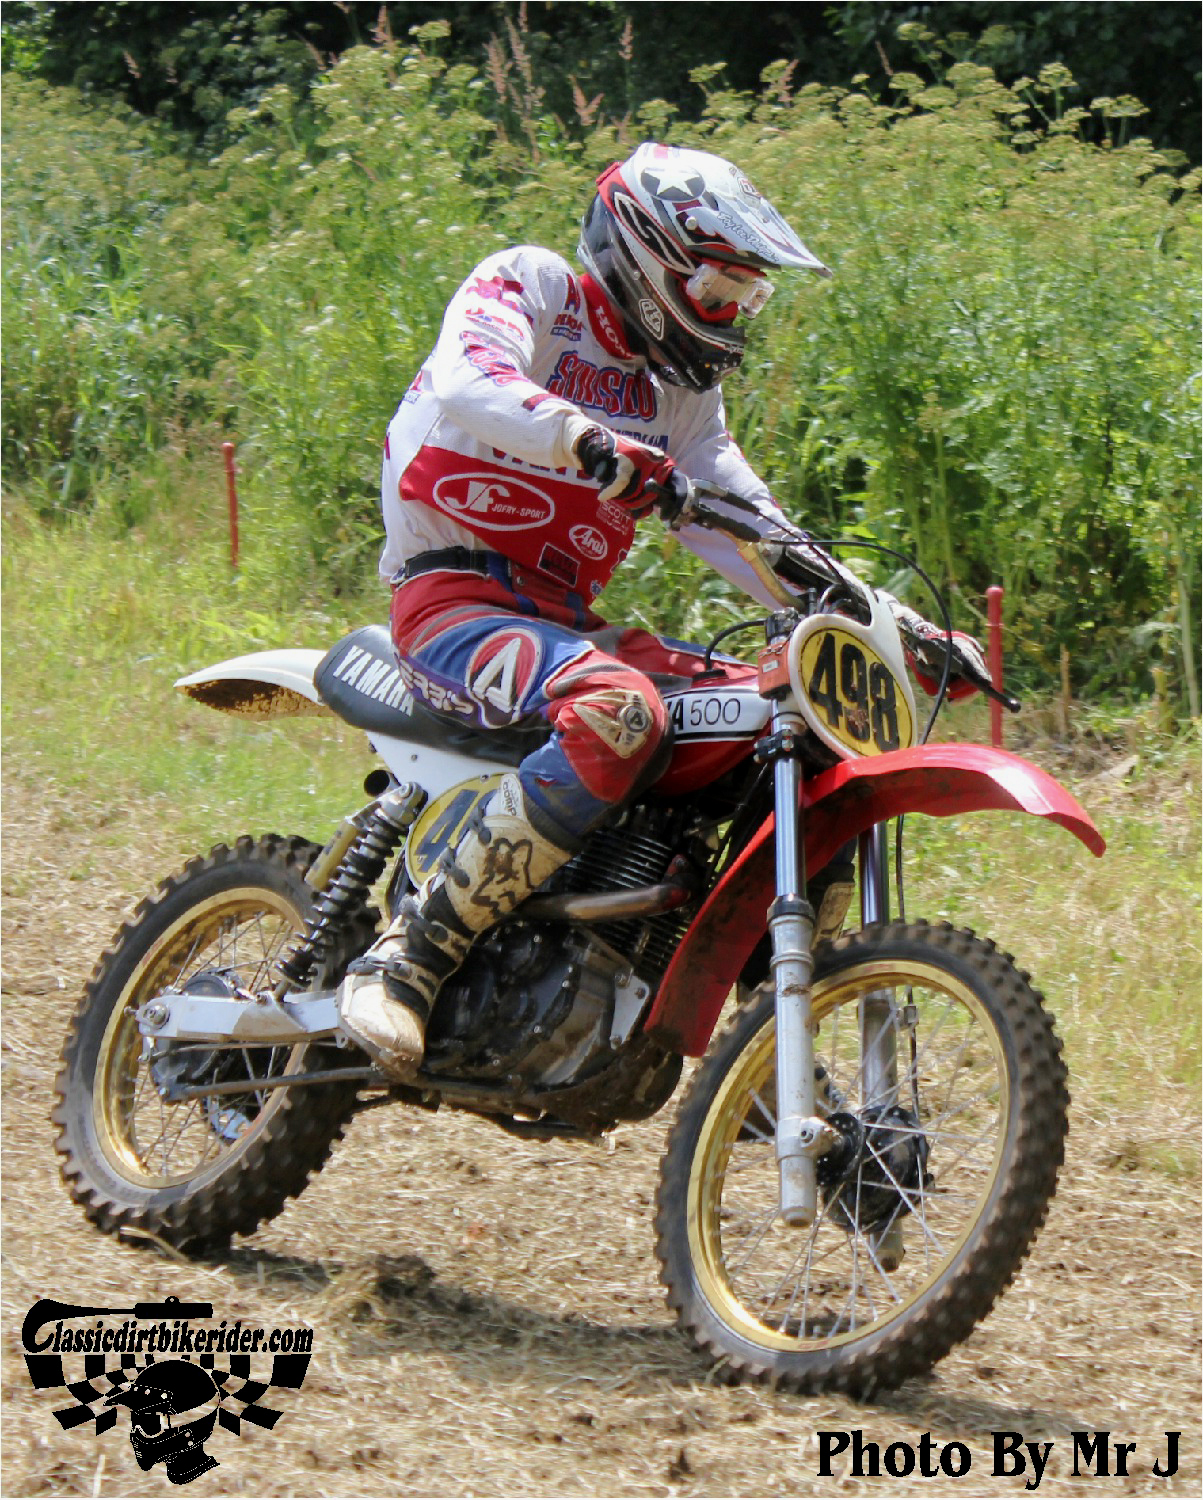 king of the castle 2015 photos Farleigh Castle twinshock motocross classicdirtbikerider.com 39